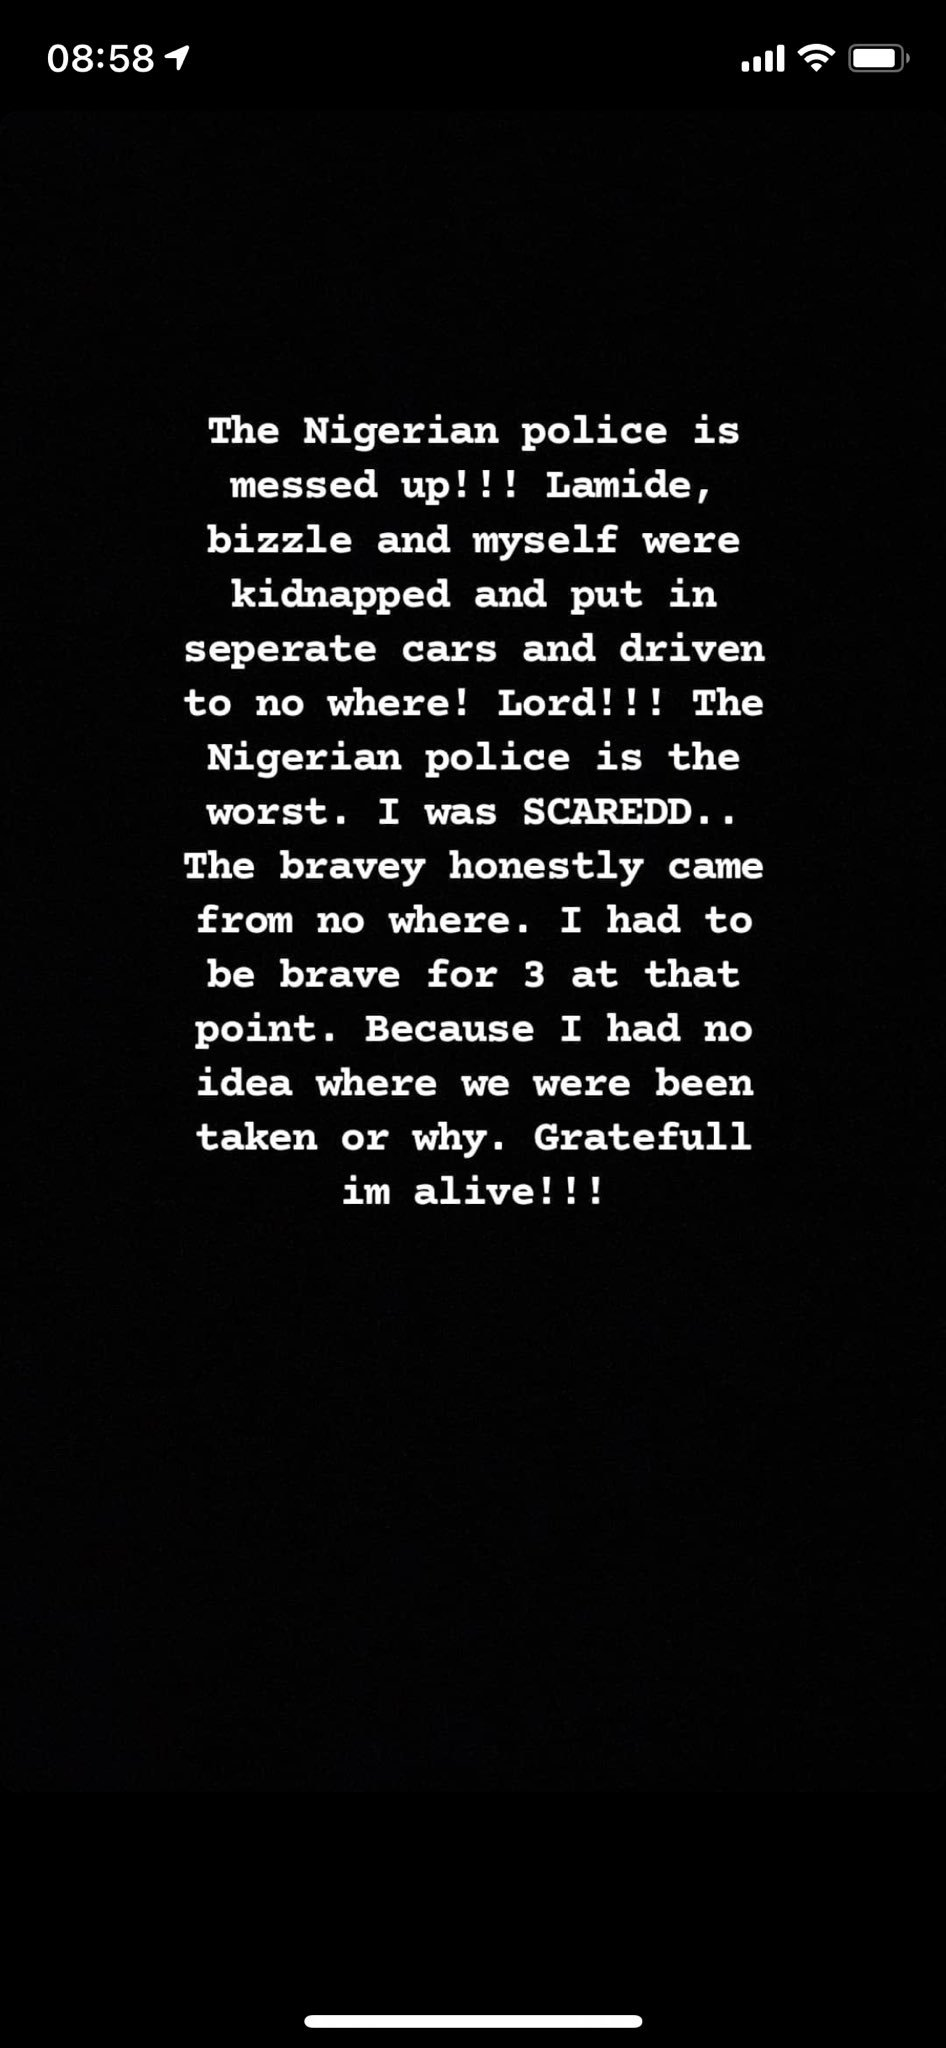 Lady and her friends kidnapped by SARS